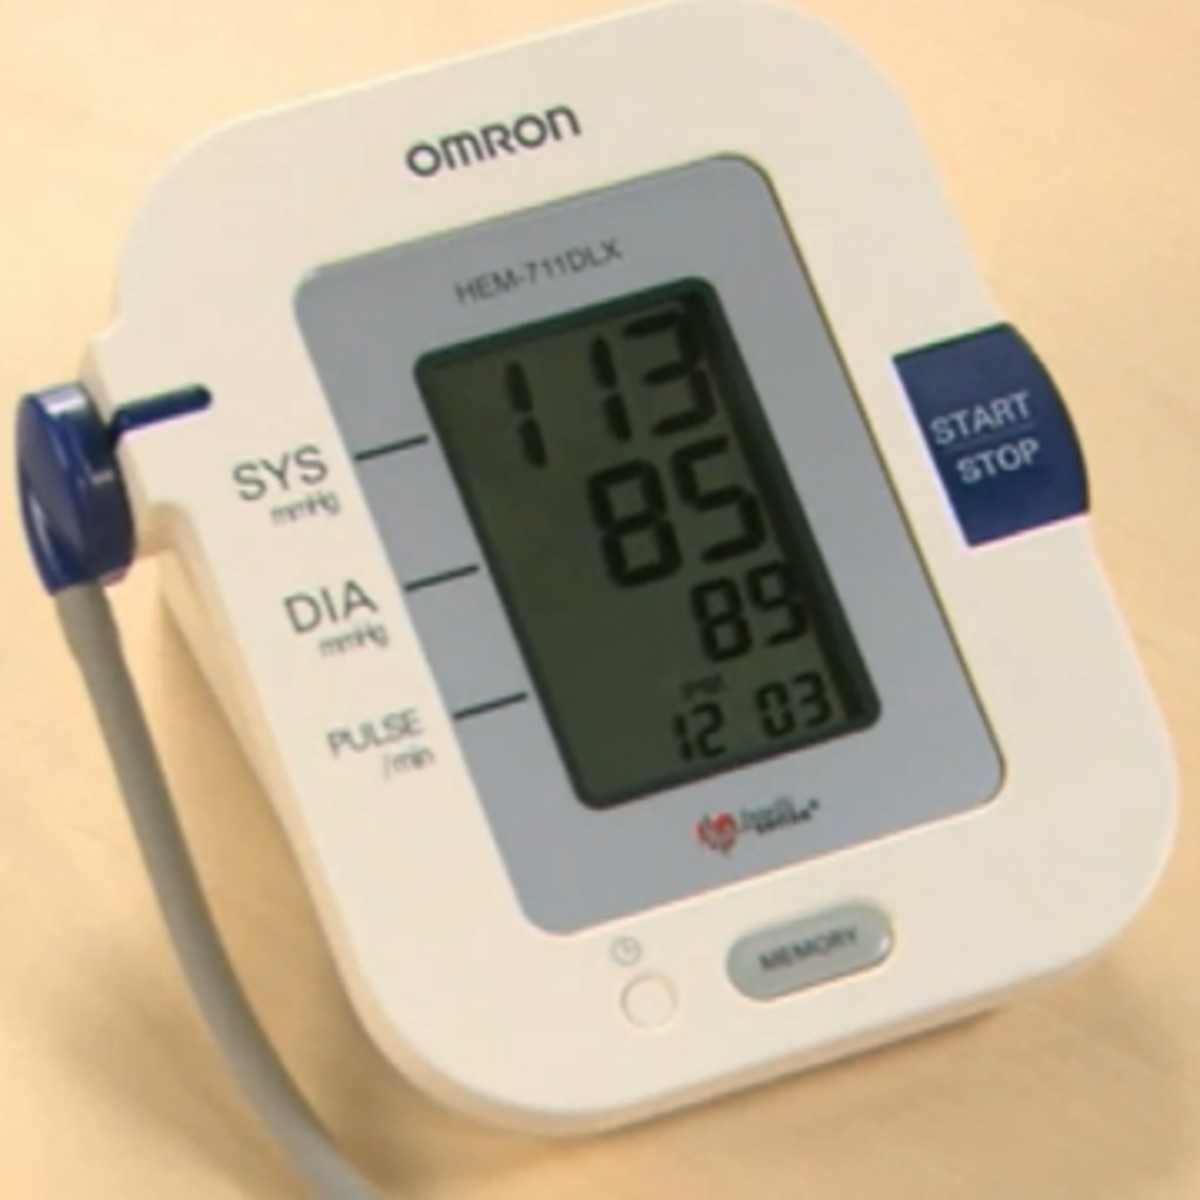 This is the display unit of the upper arm blood pressure monitor from Omron that I have provided a link to on the left.